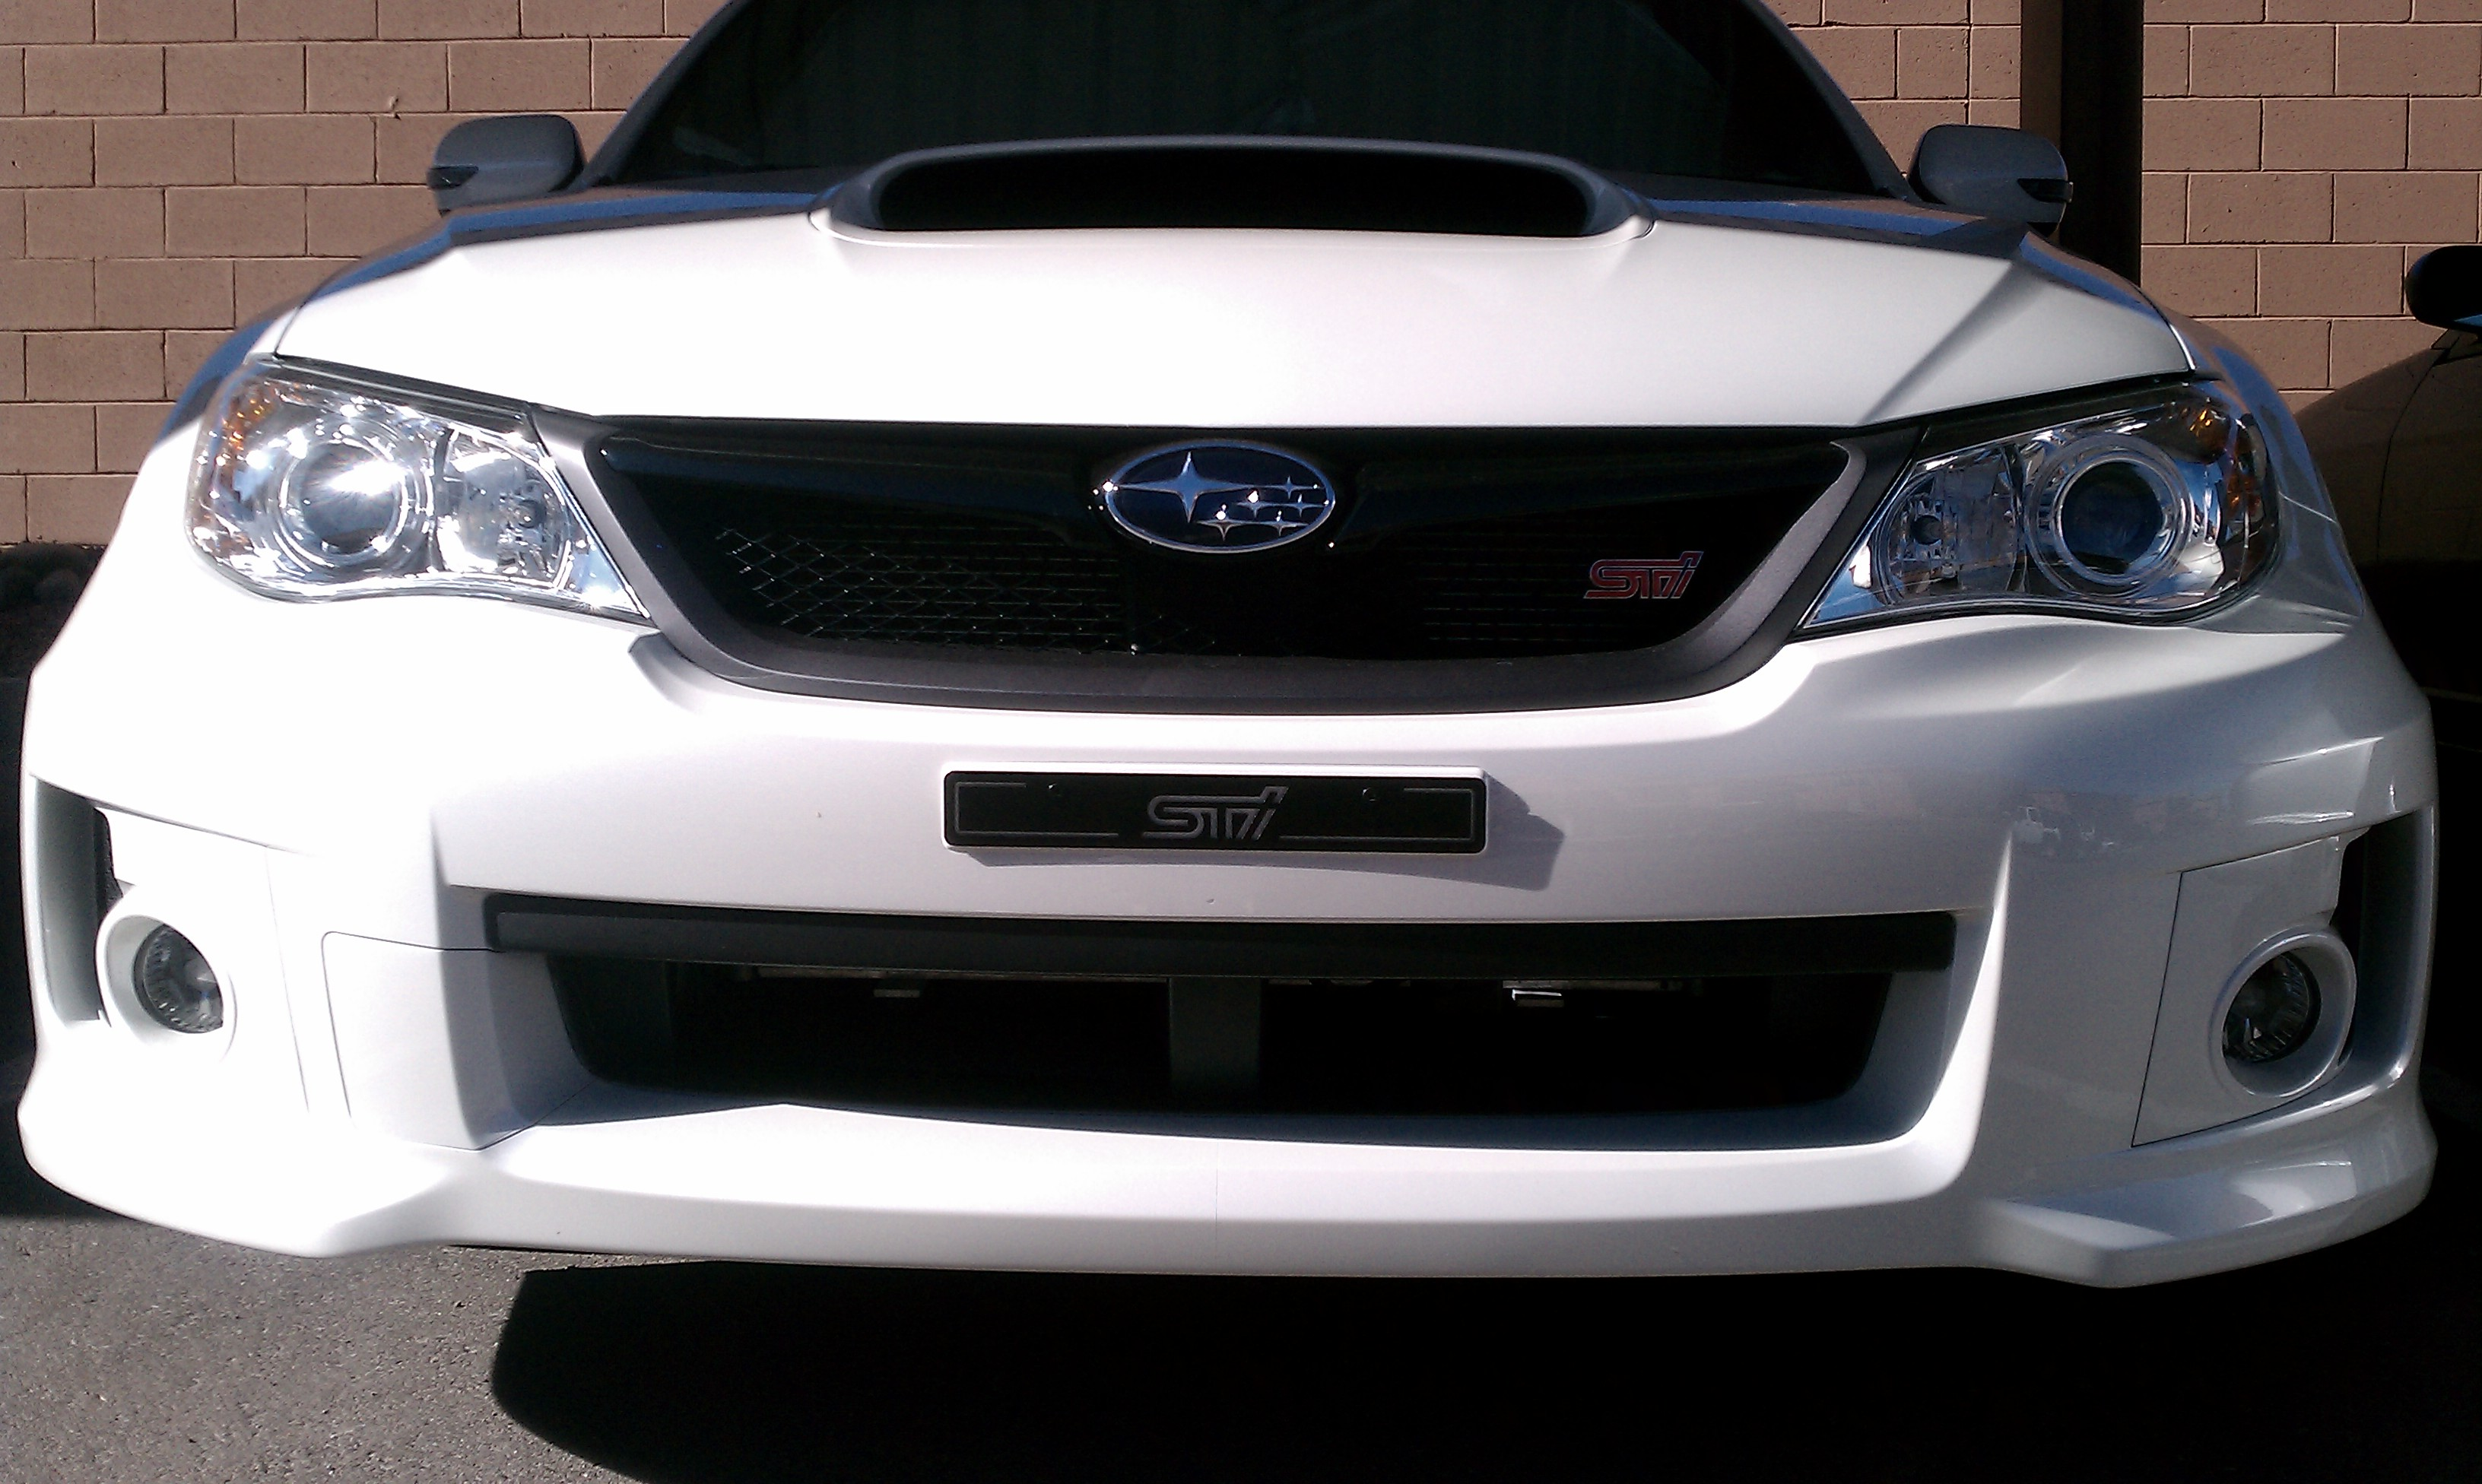 2012 Subaru STi, 41,xxx miles, Garage Baby, One Owner, Asking .9k-front-jpg